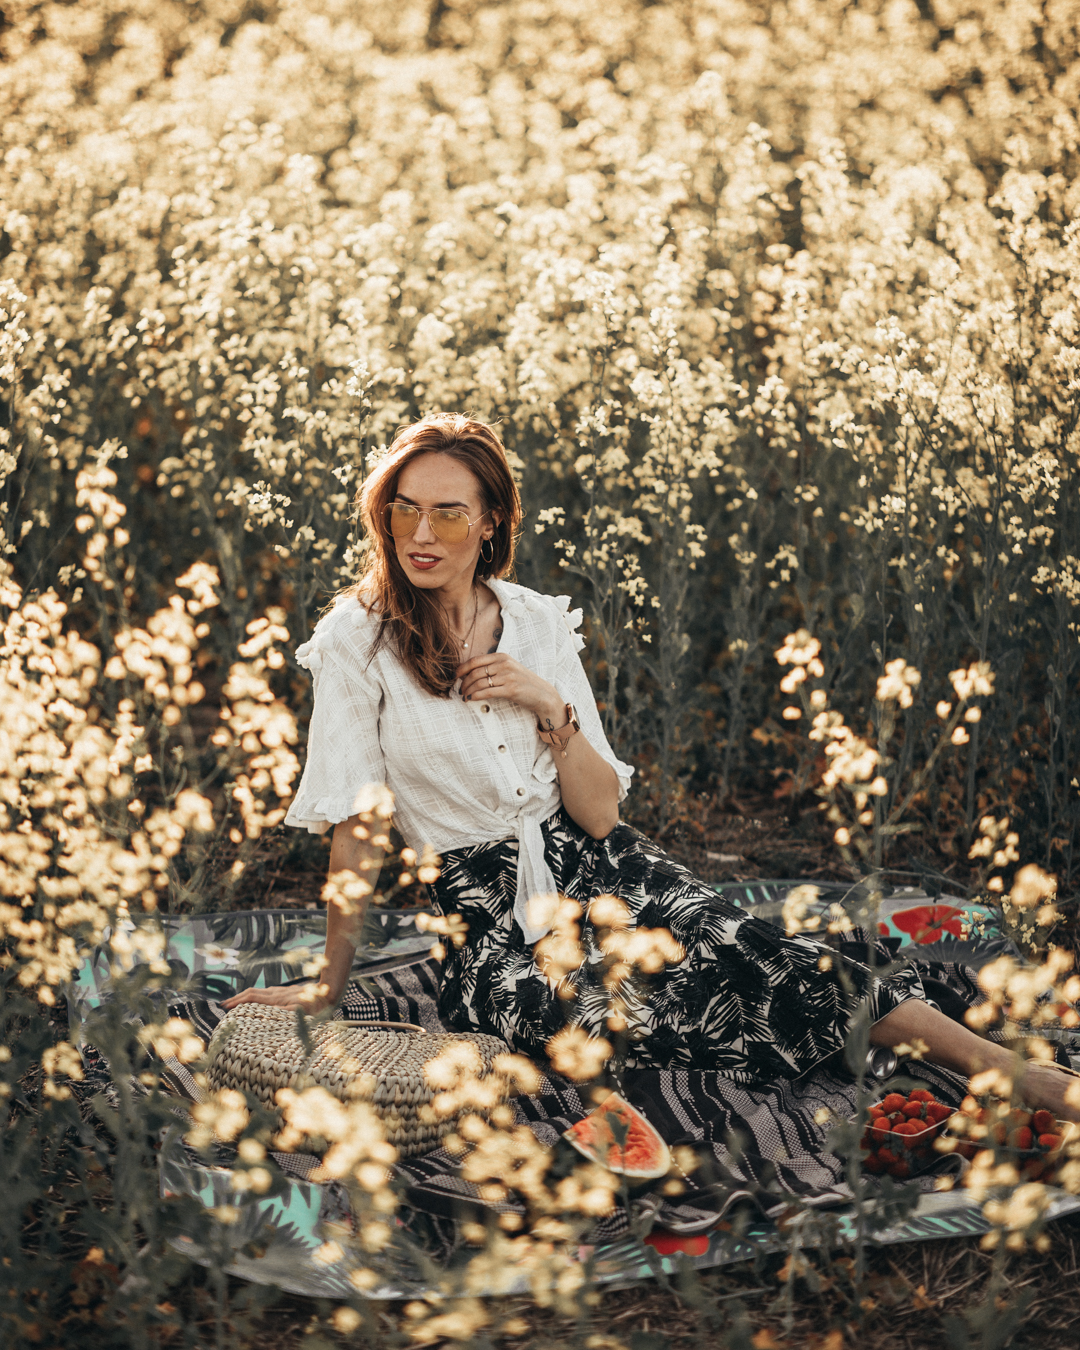 girl flower field summer sunset picnic photography